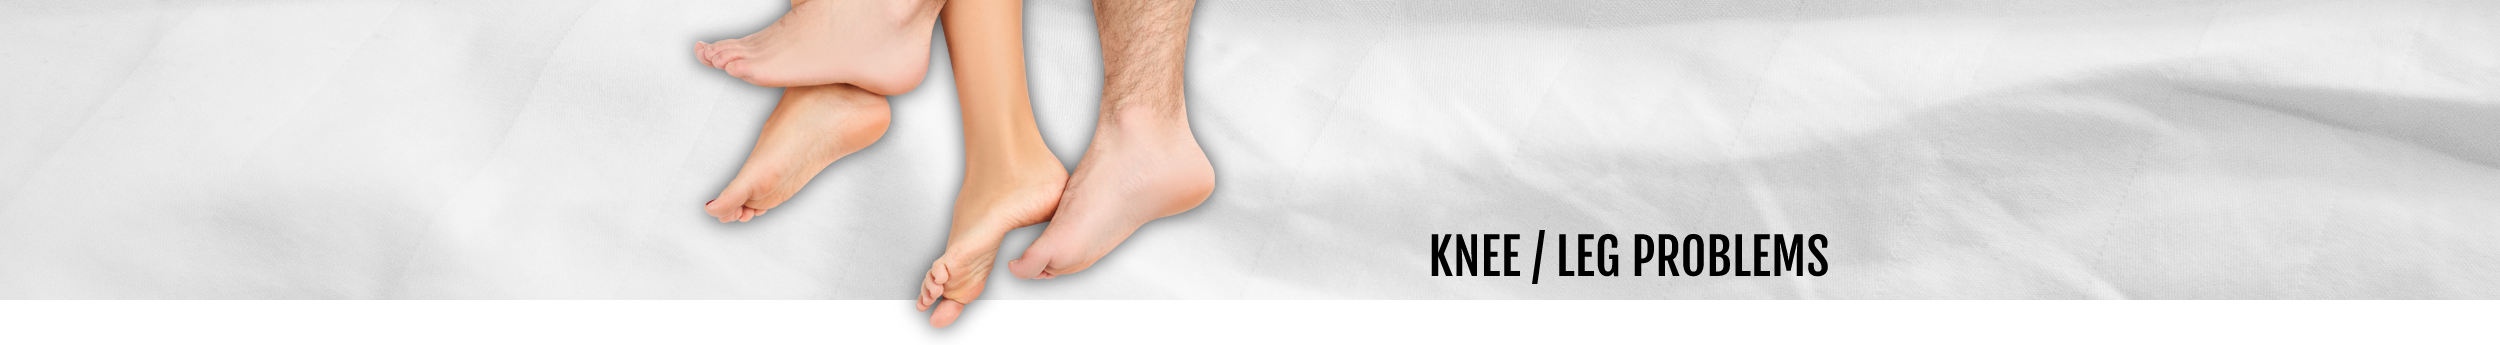 Knee / Leg problems header for the Walk IN Foot Clinic in central London